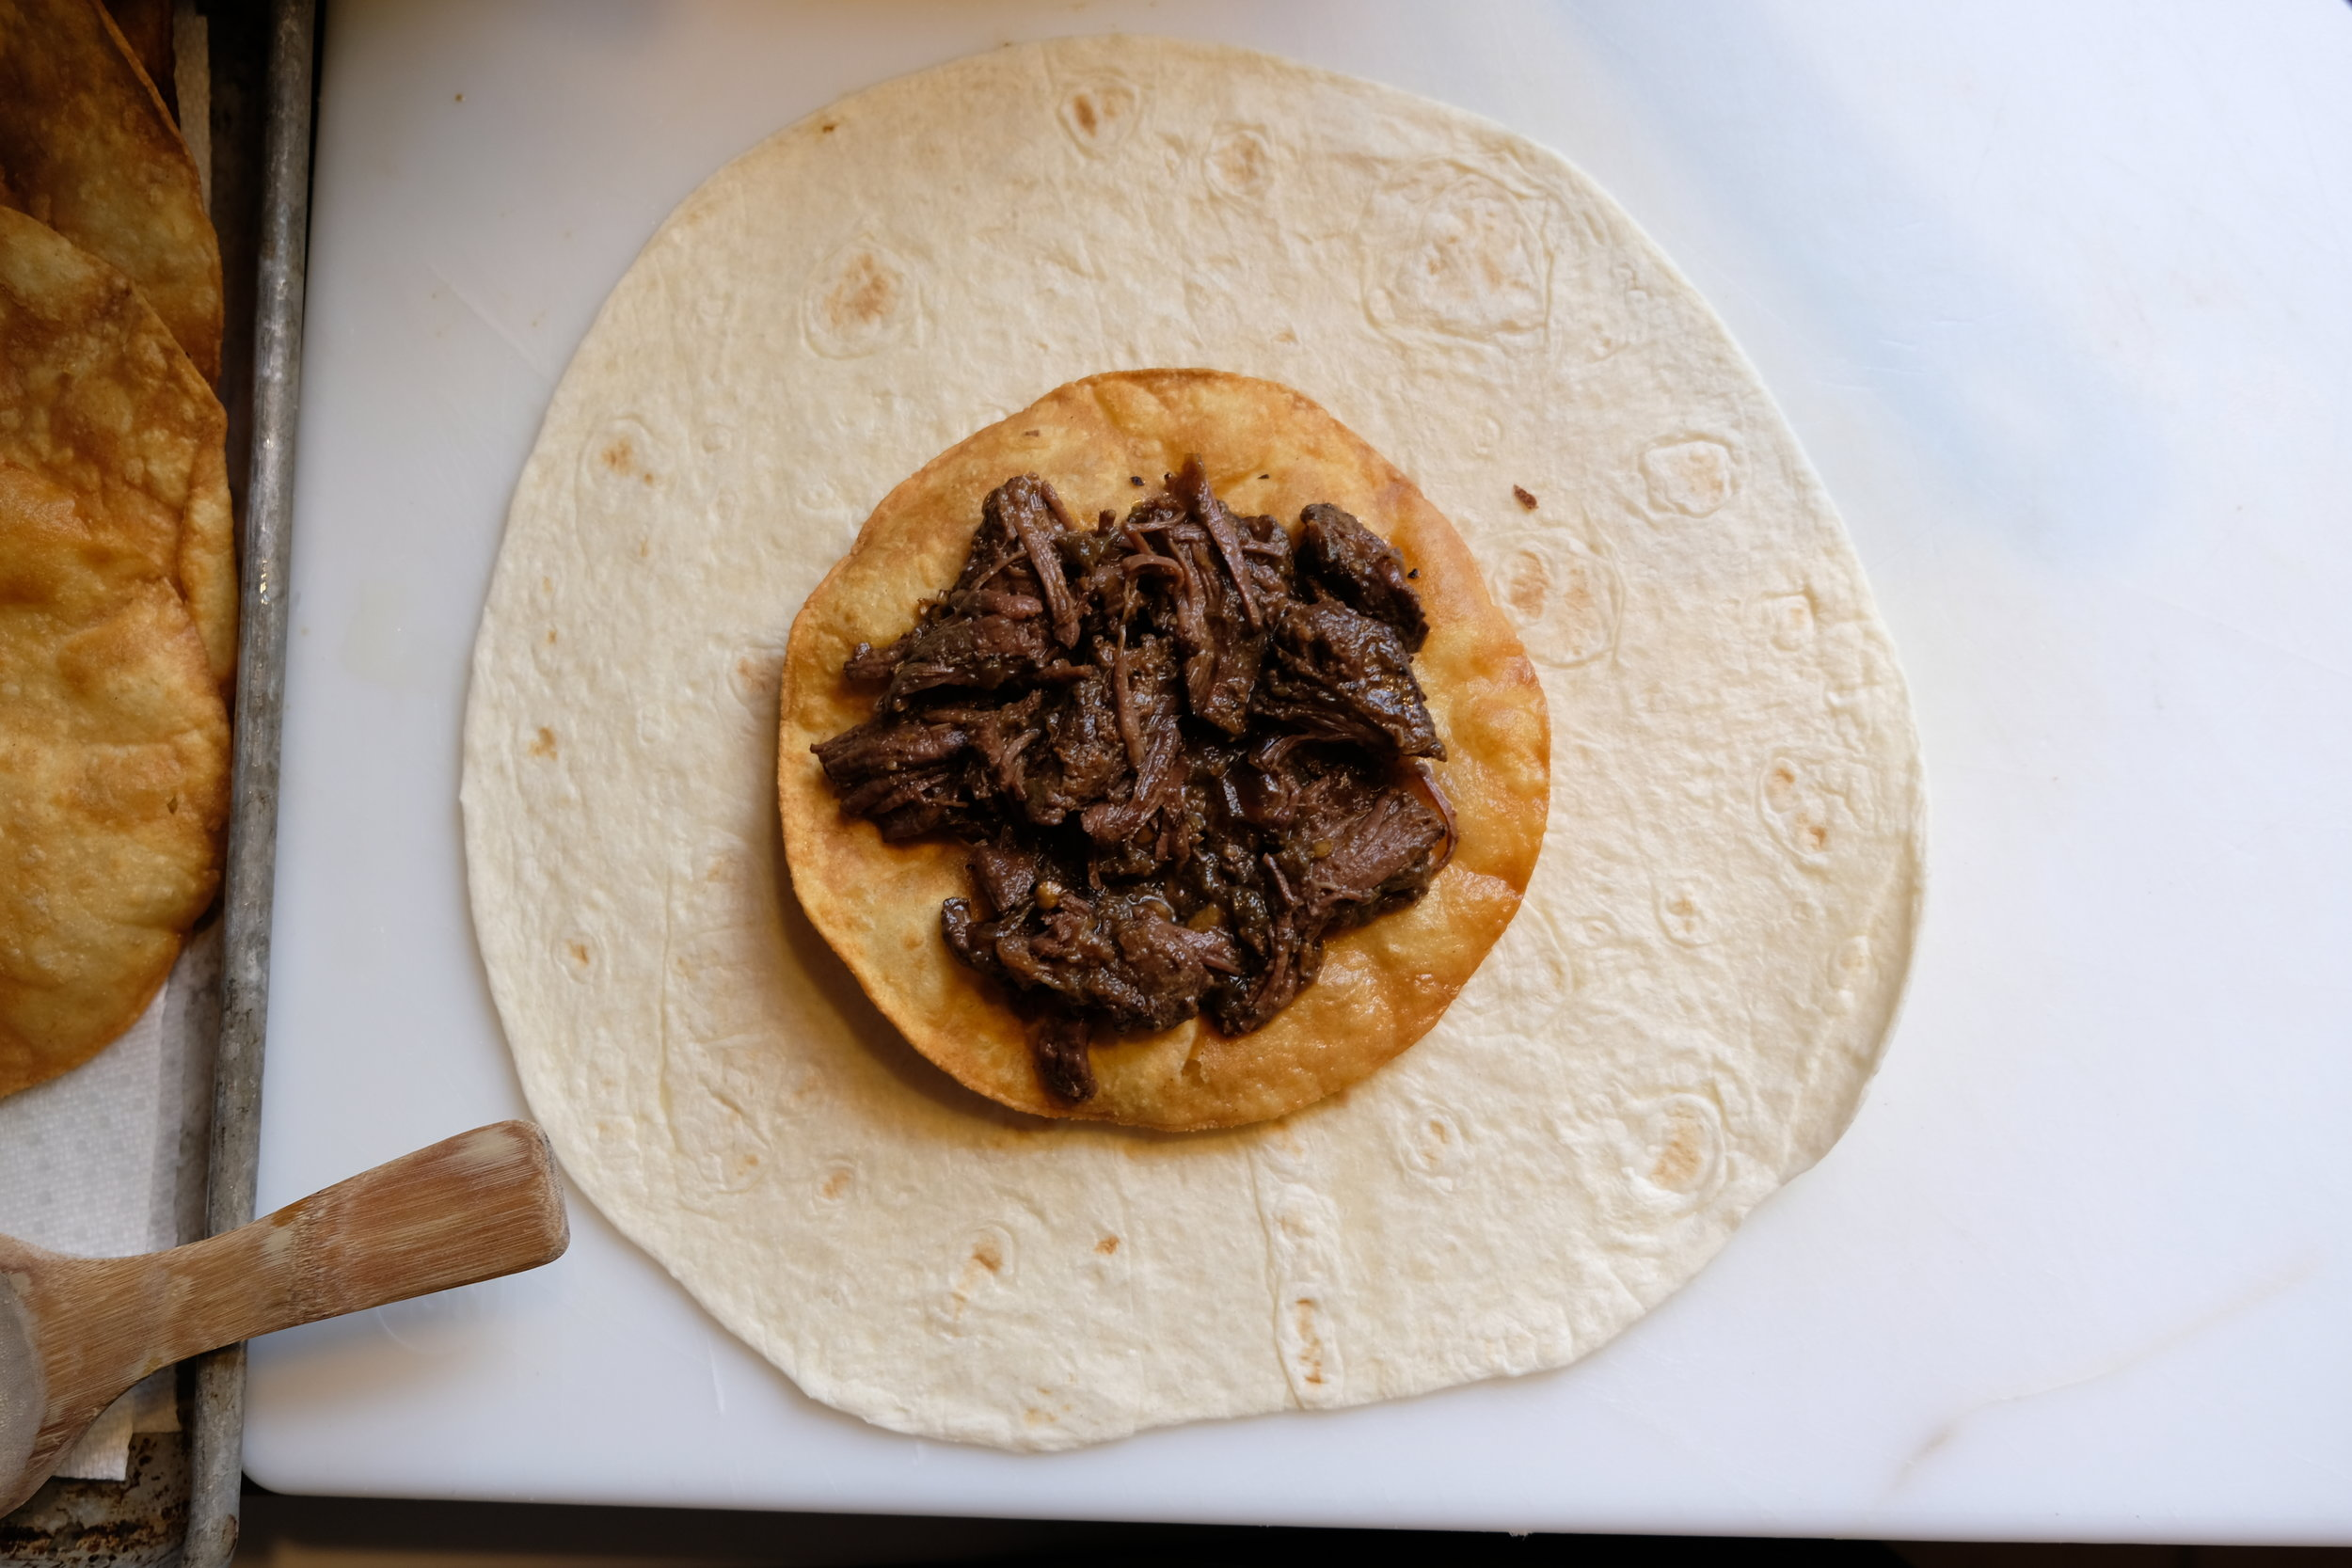 Center the corn tortilla over the scoop of refried beans, and top with meat